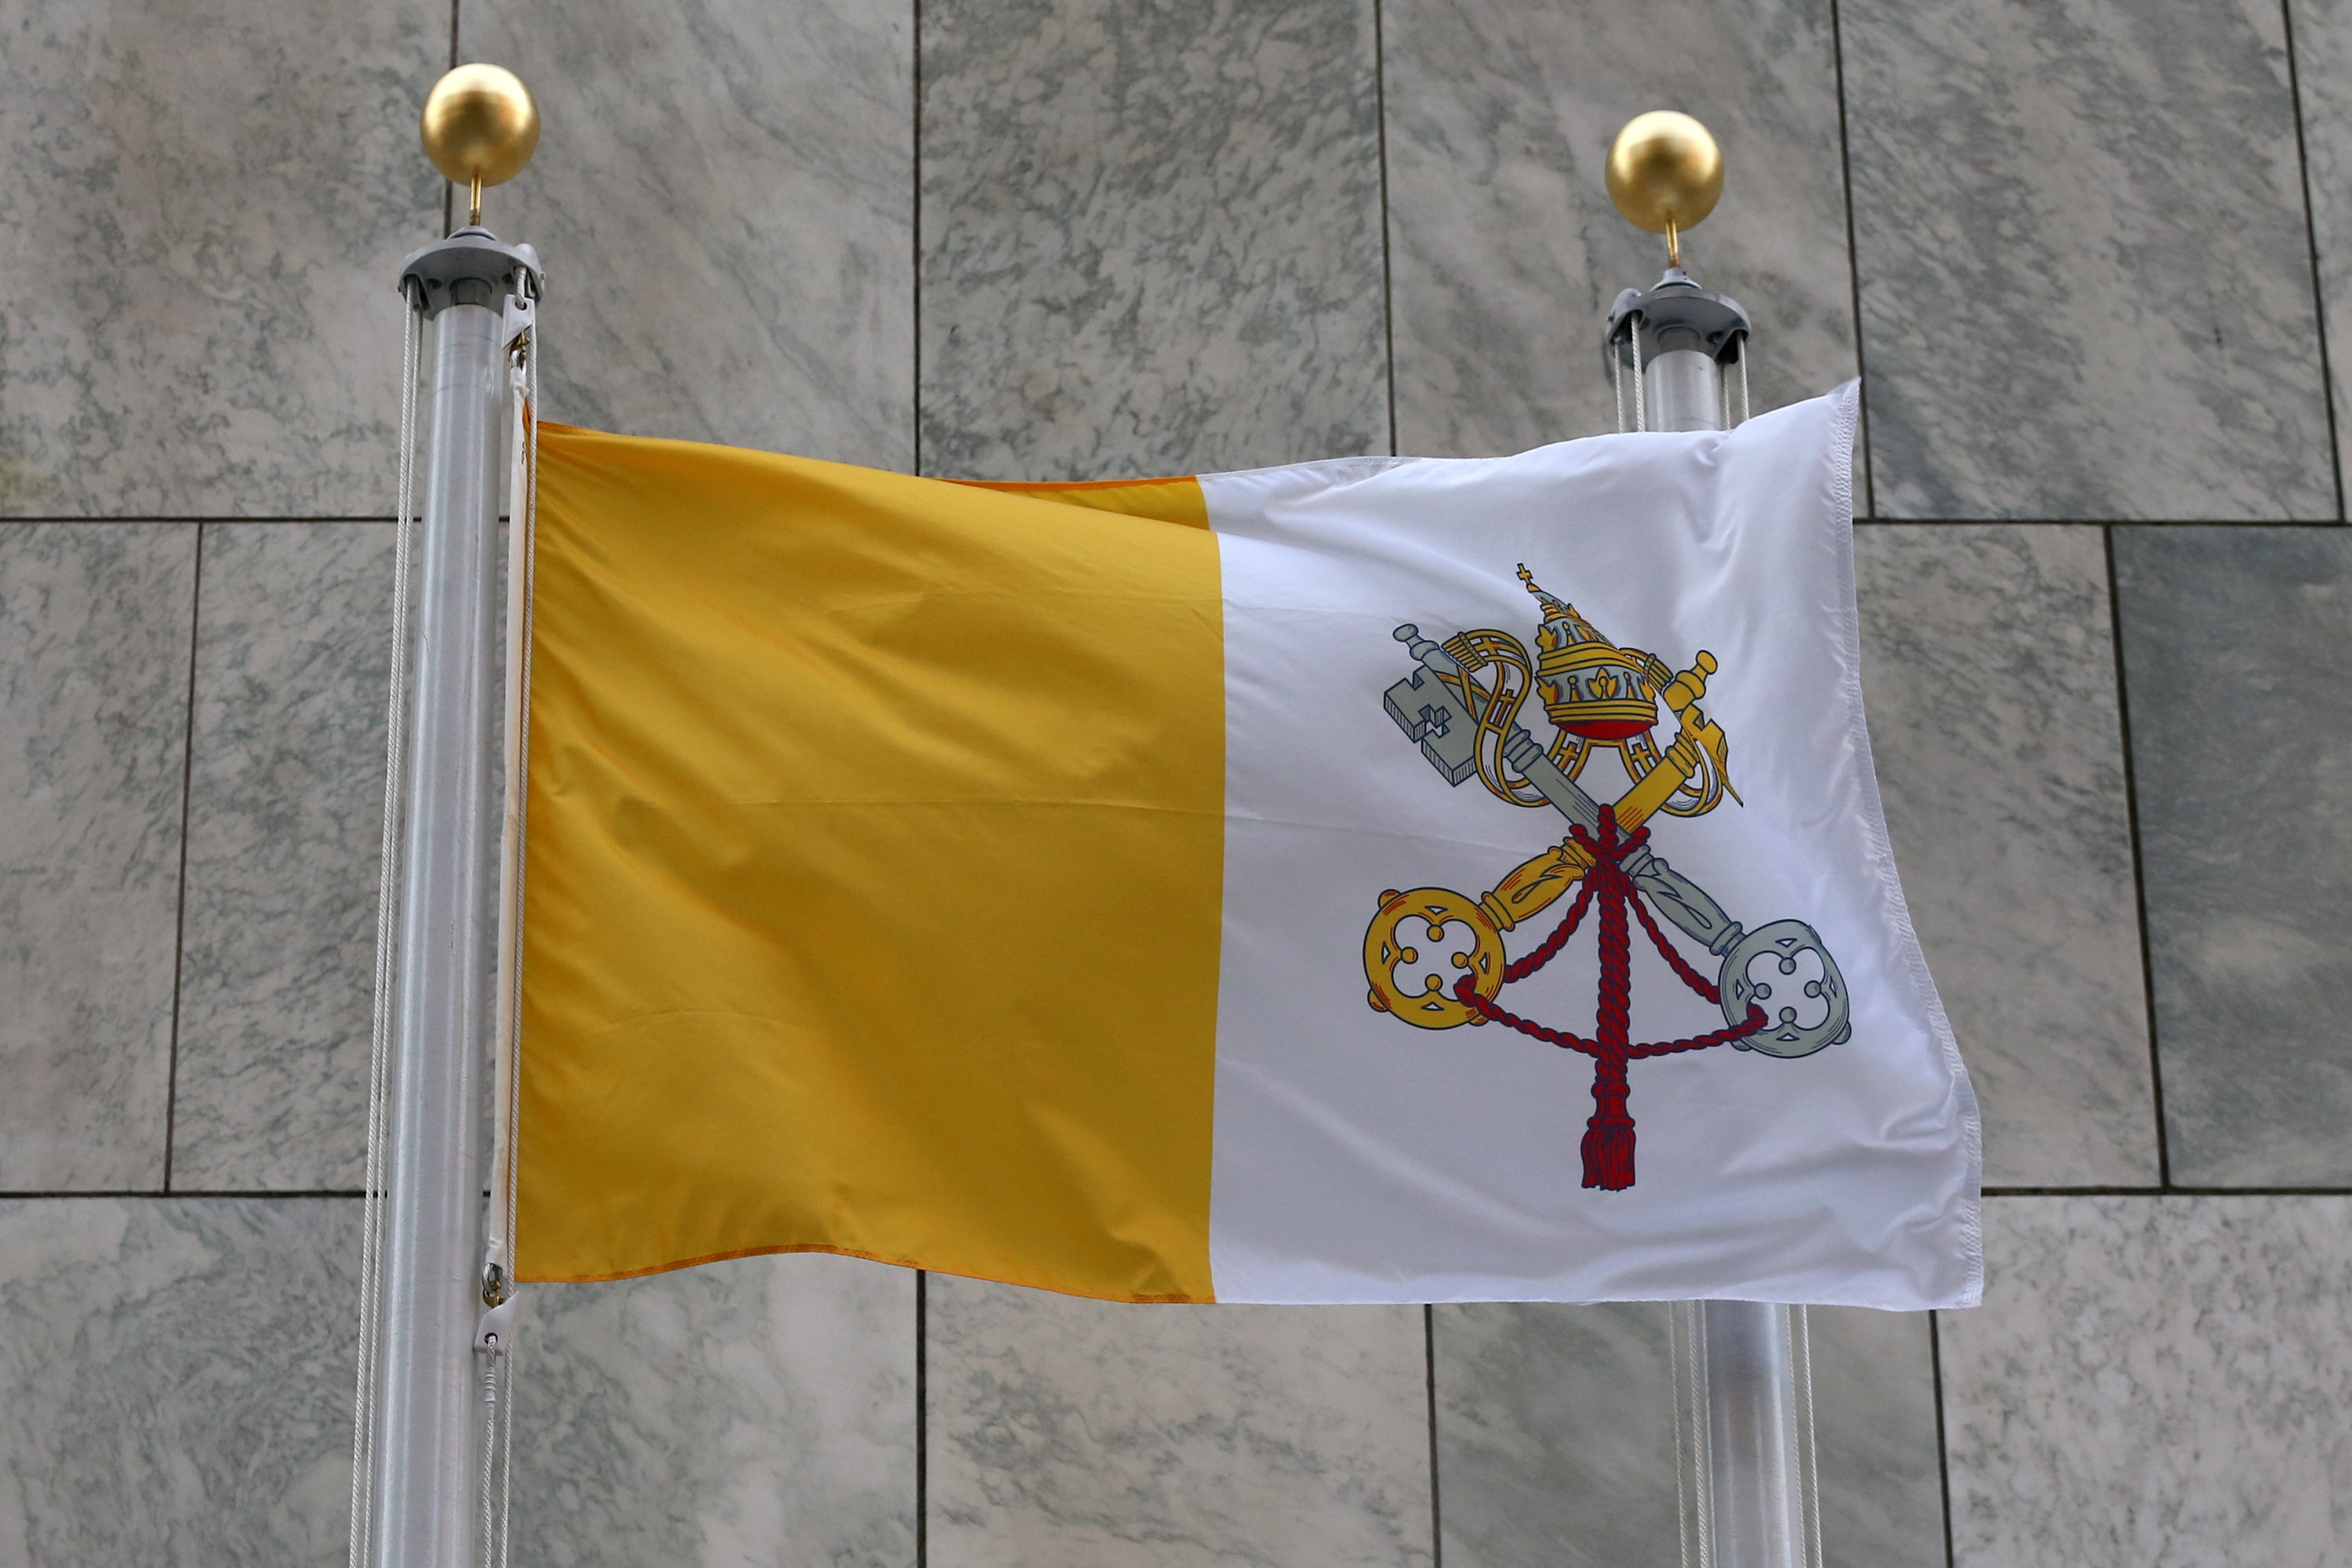 Bandeira do Vaticano é hasteada na ONU